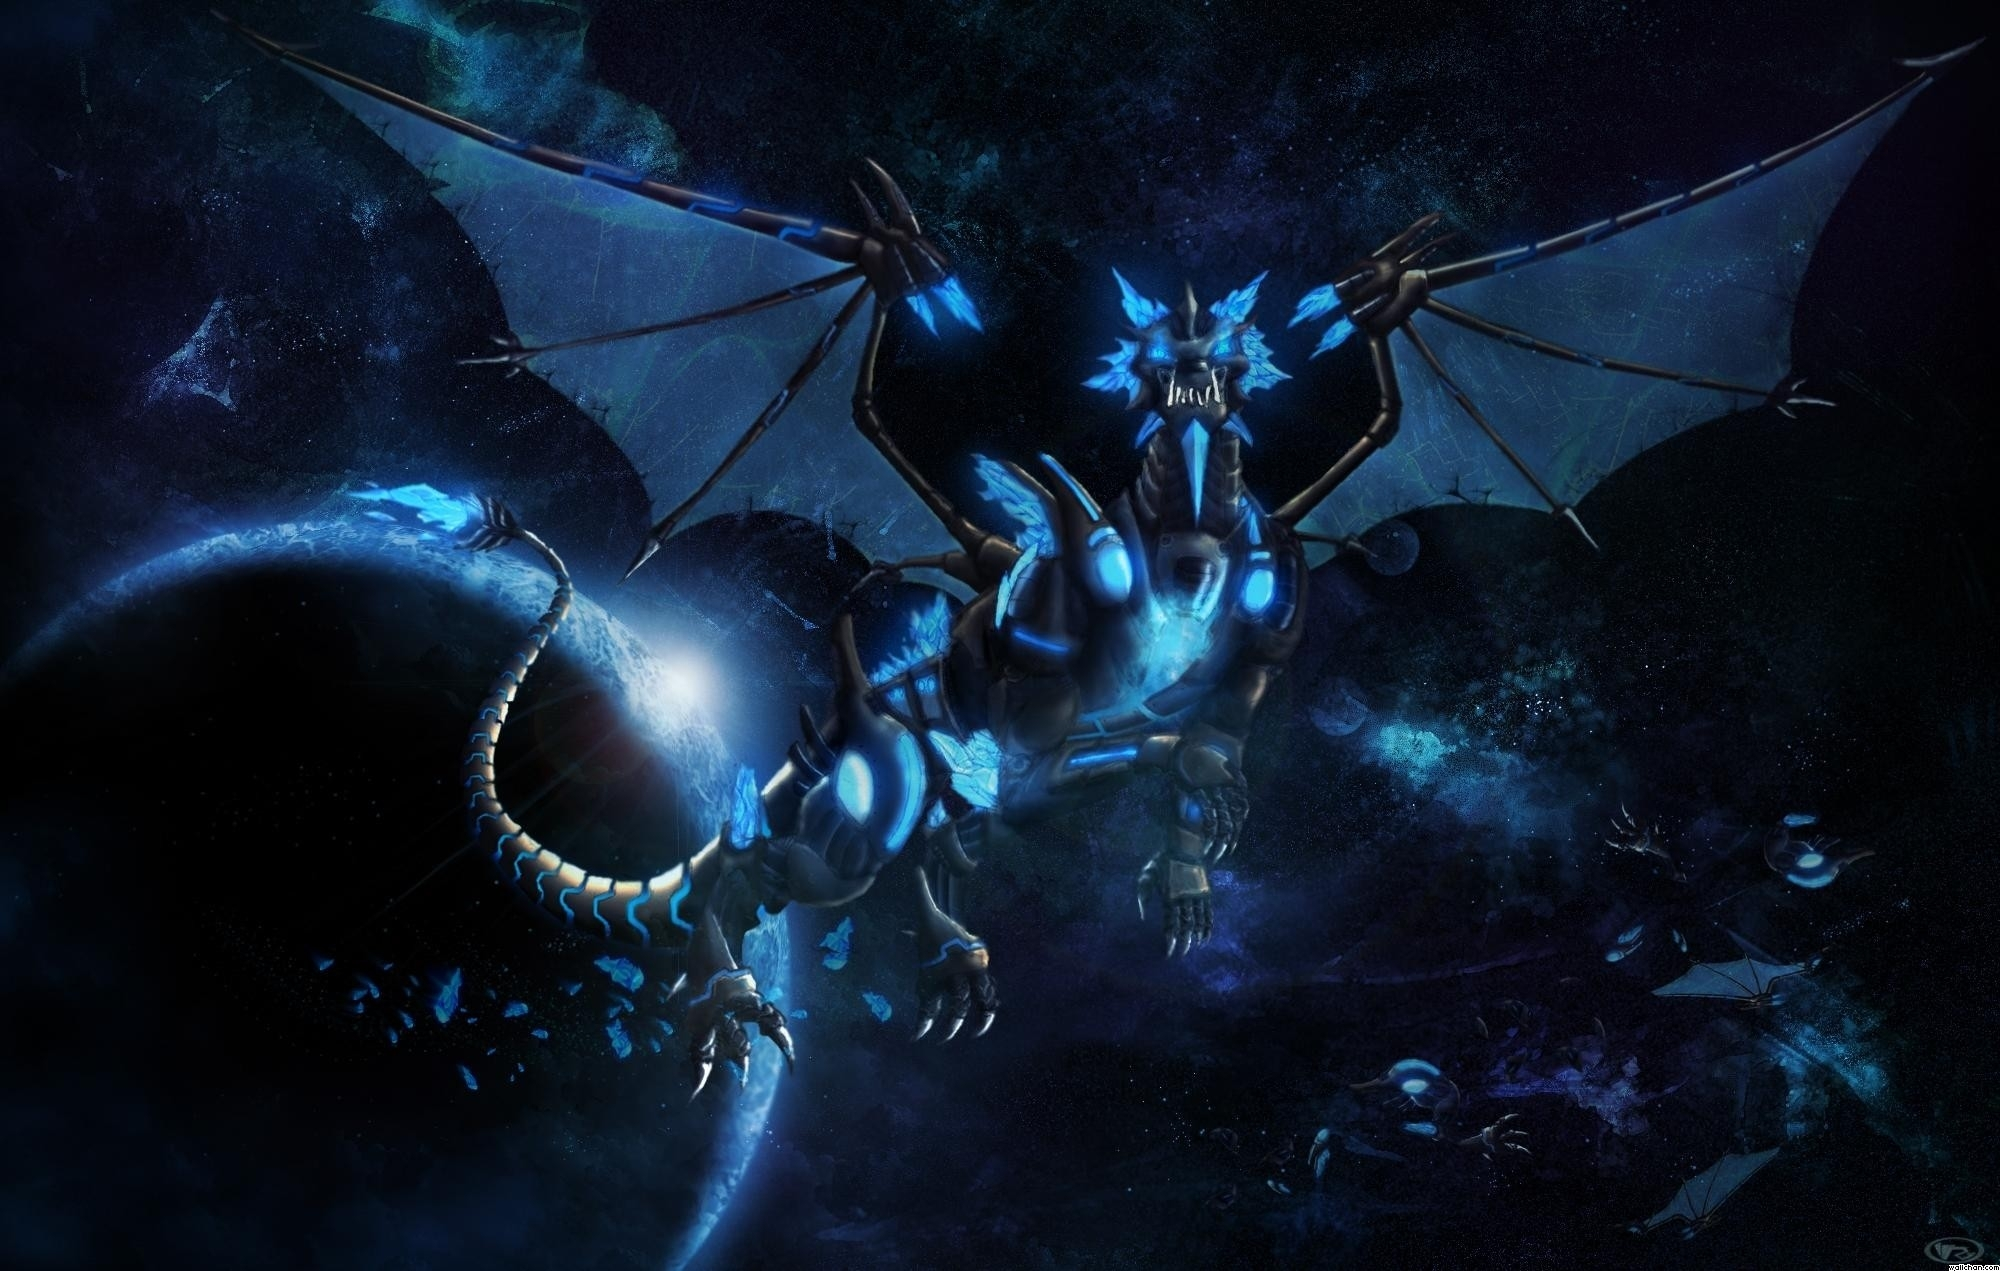 black and blue dragon wallpaper 1920x 1080 - hdwall